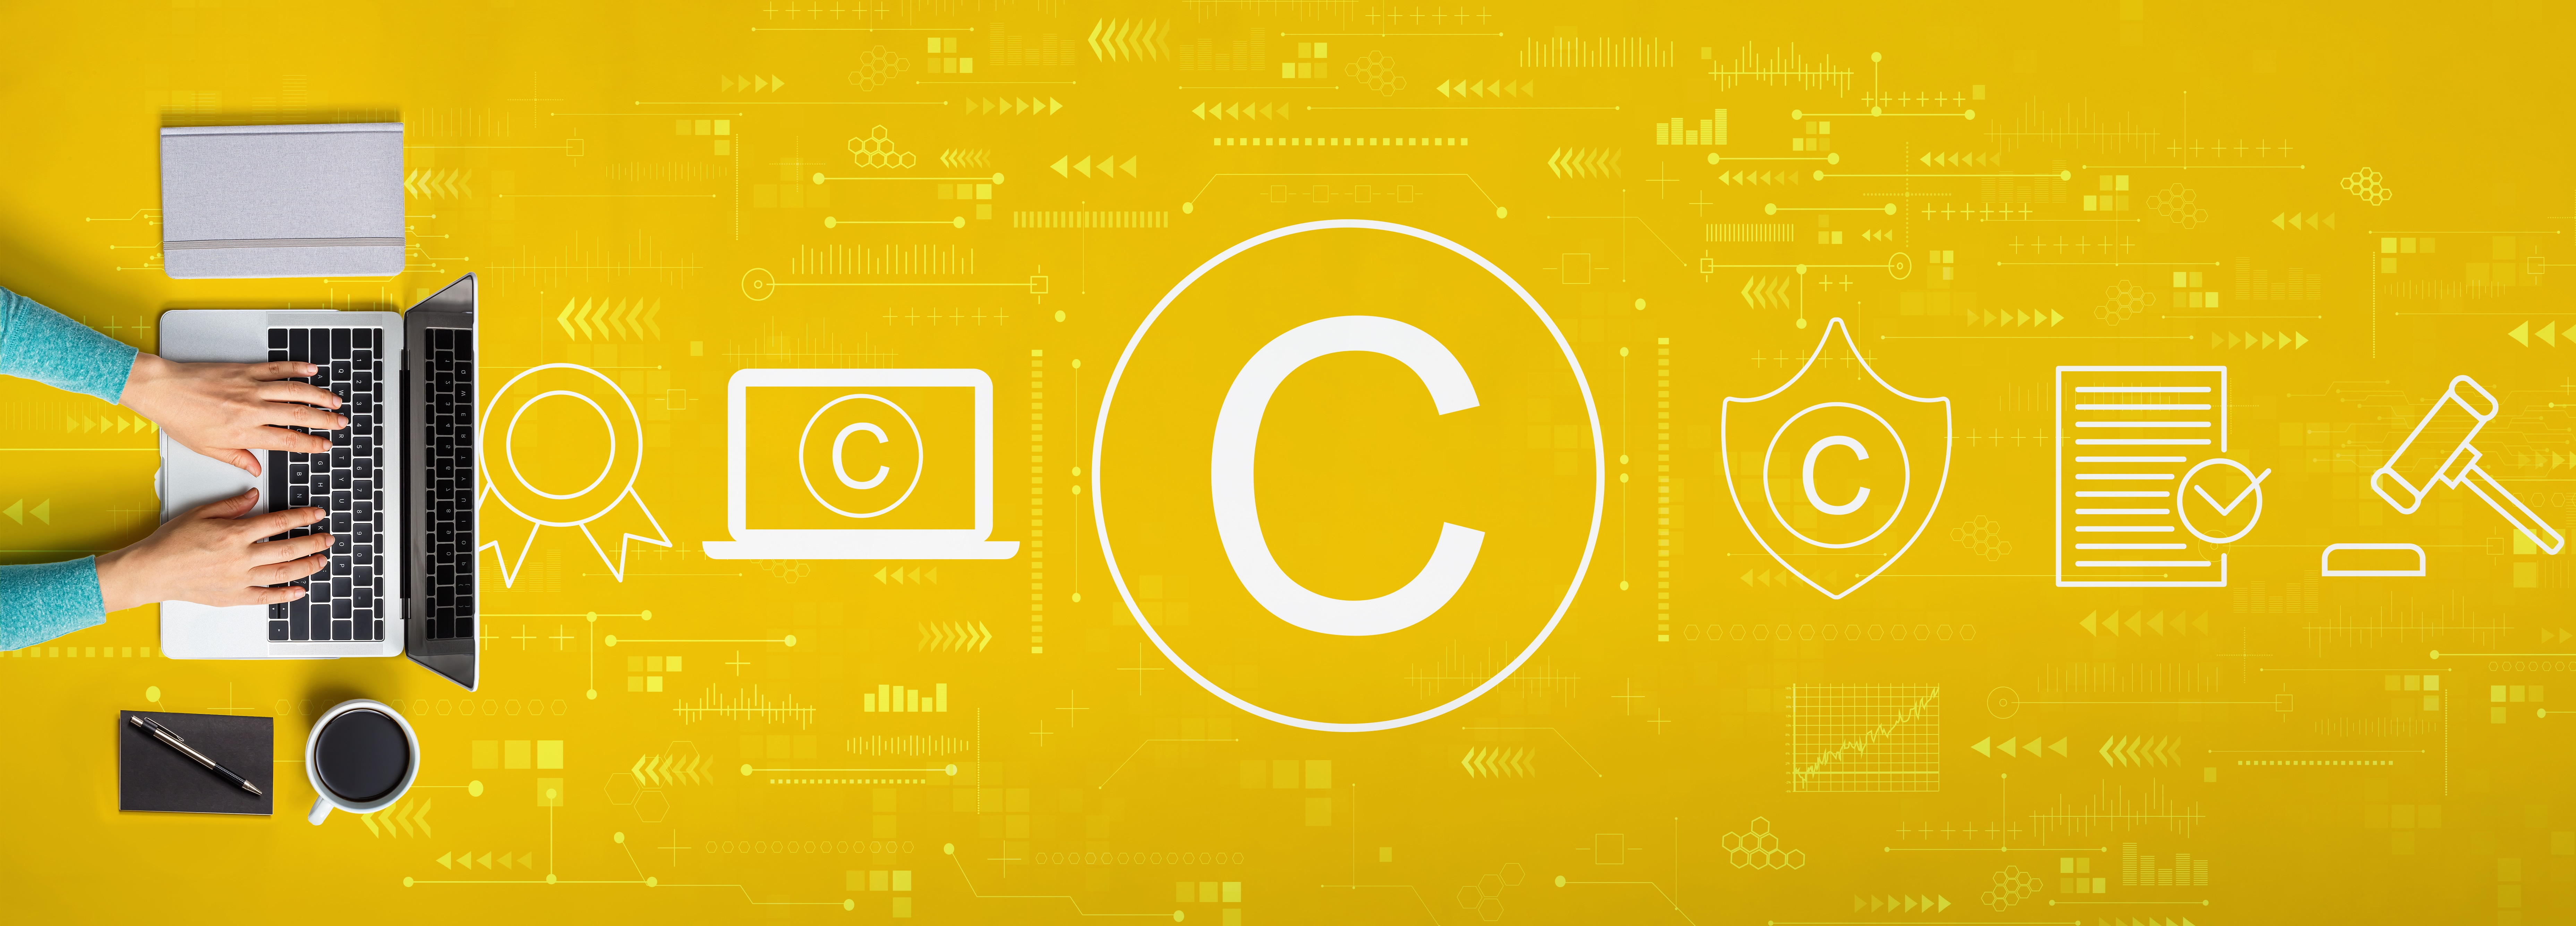 yellow banner with a series of symbols denoting the process of creation to patent-copyright protection - symbols show person working on a computer, then digital intellectual property, then patent-copyright application, then patent-copyright review, then patent-copyright approval and finally judge gavel protecting intellectual property